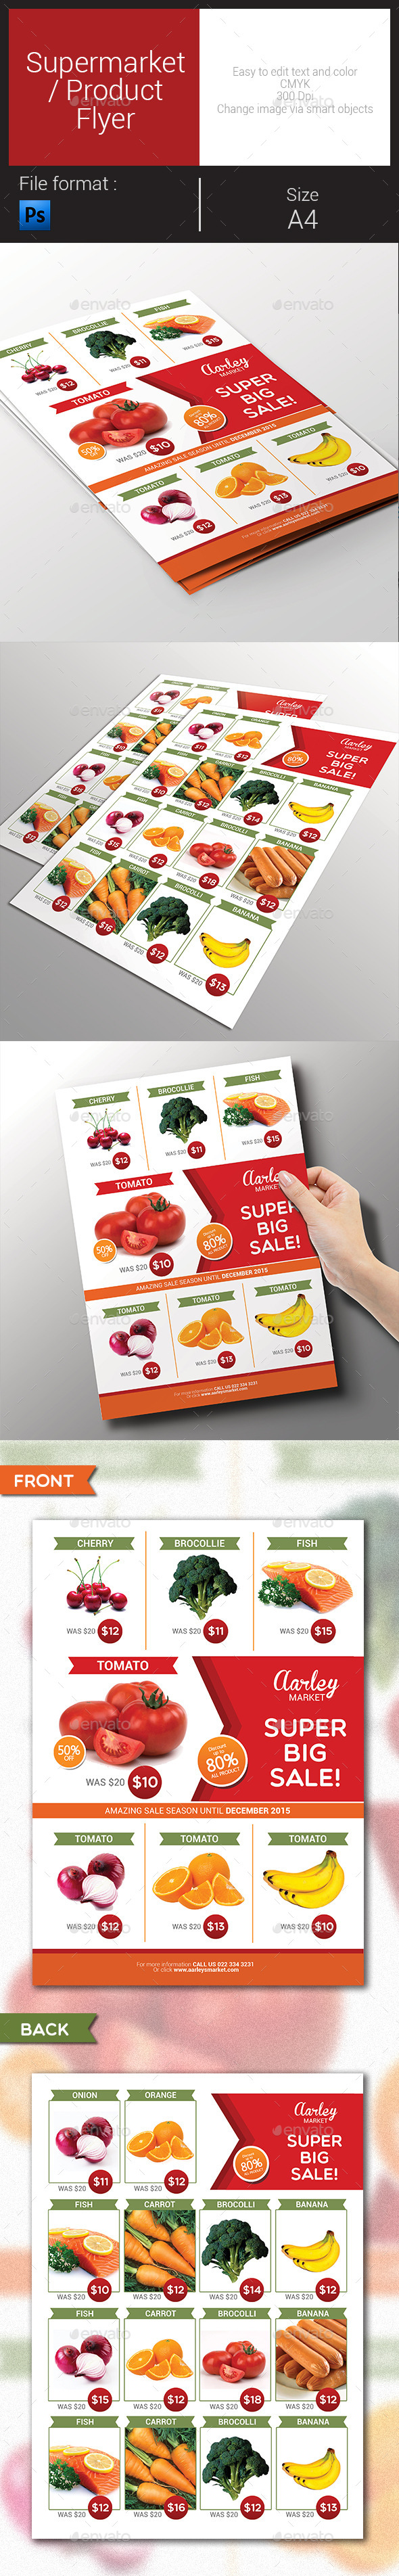 GraphicRiver Supermarket Product Flyer 9164447